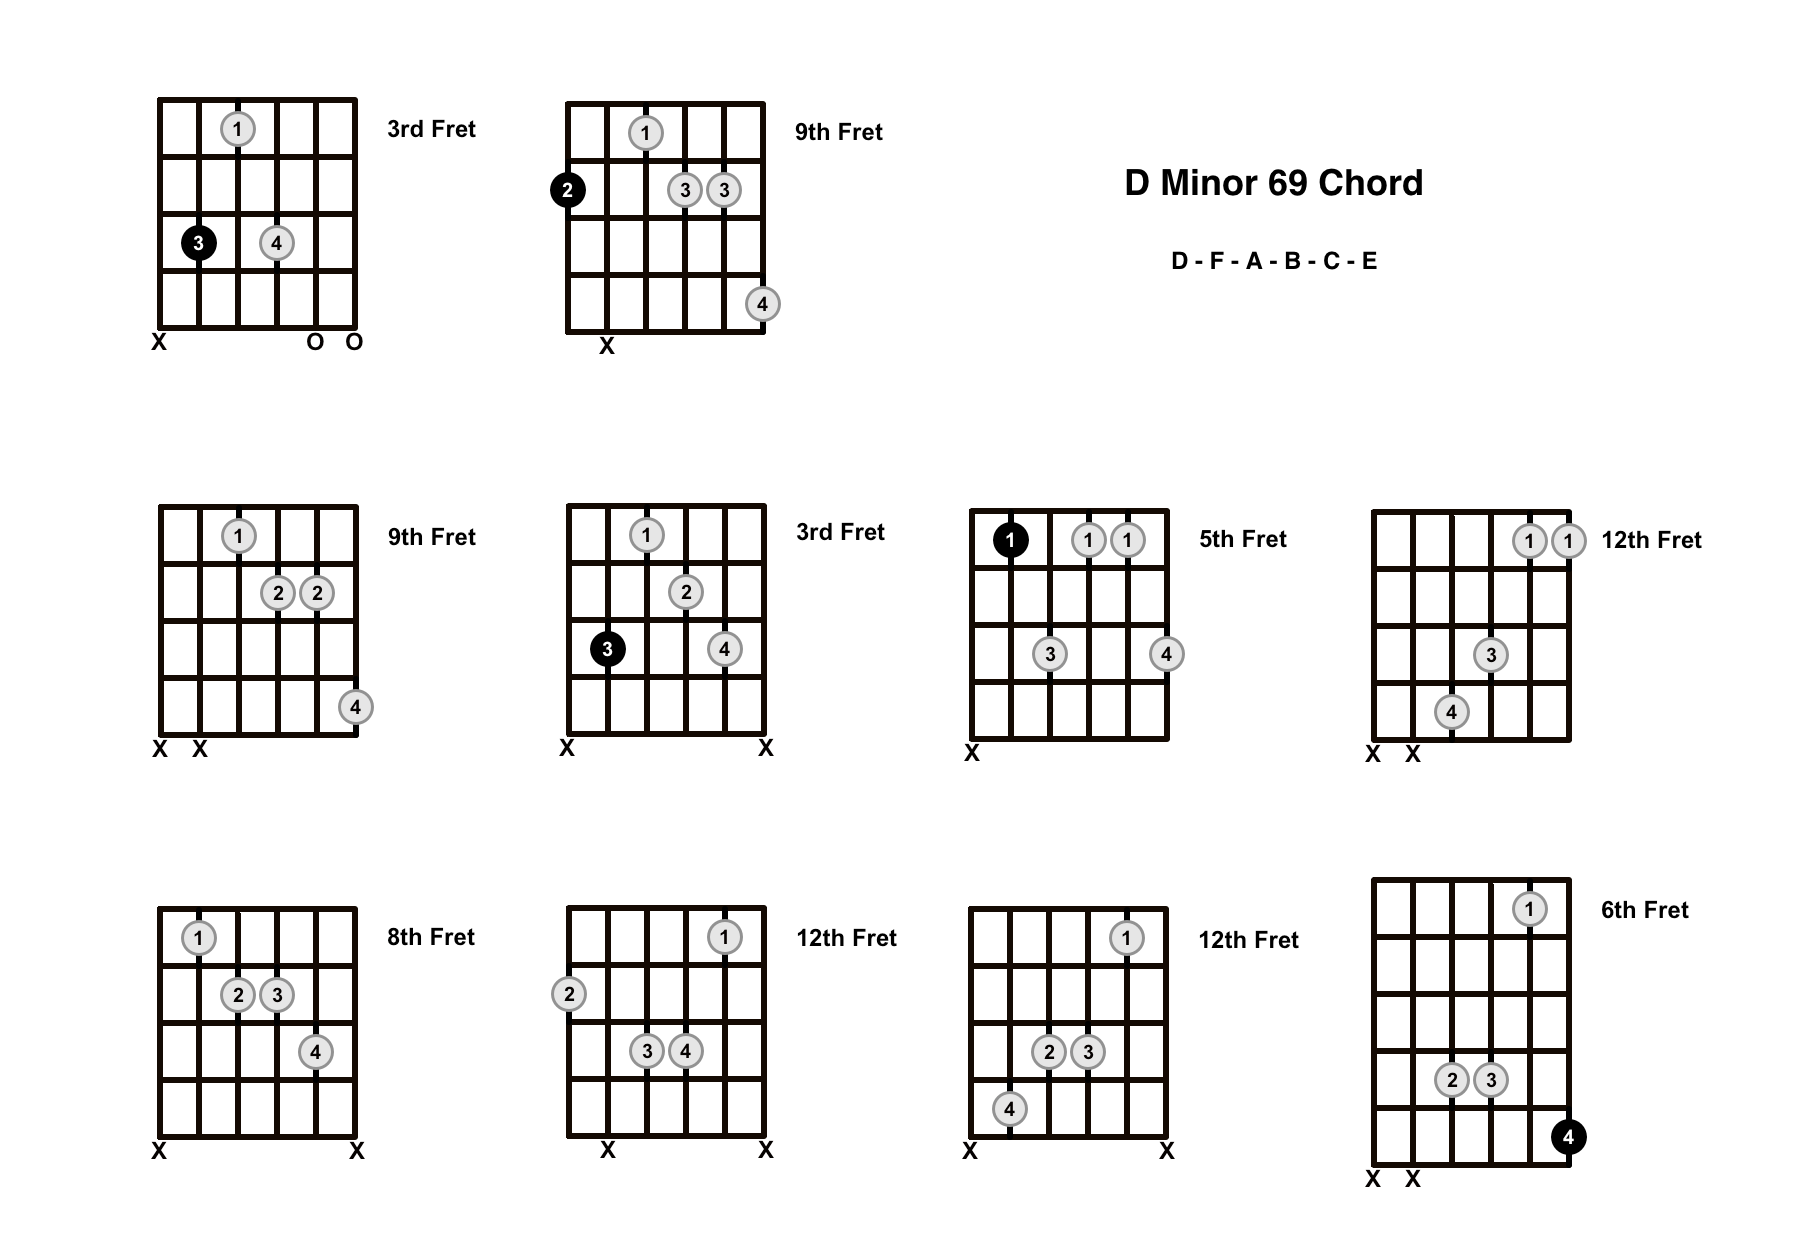 Dm69 Chord On The Guitar (D Minor 69) – Diagrams, Finger Positions and Theory